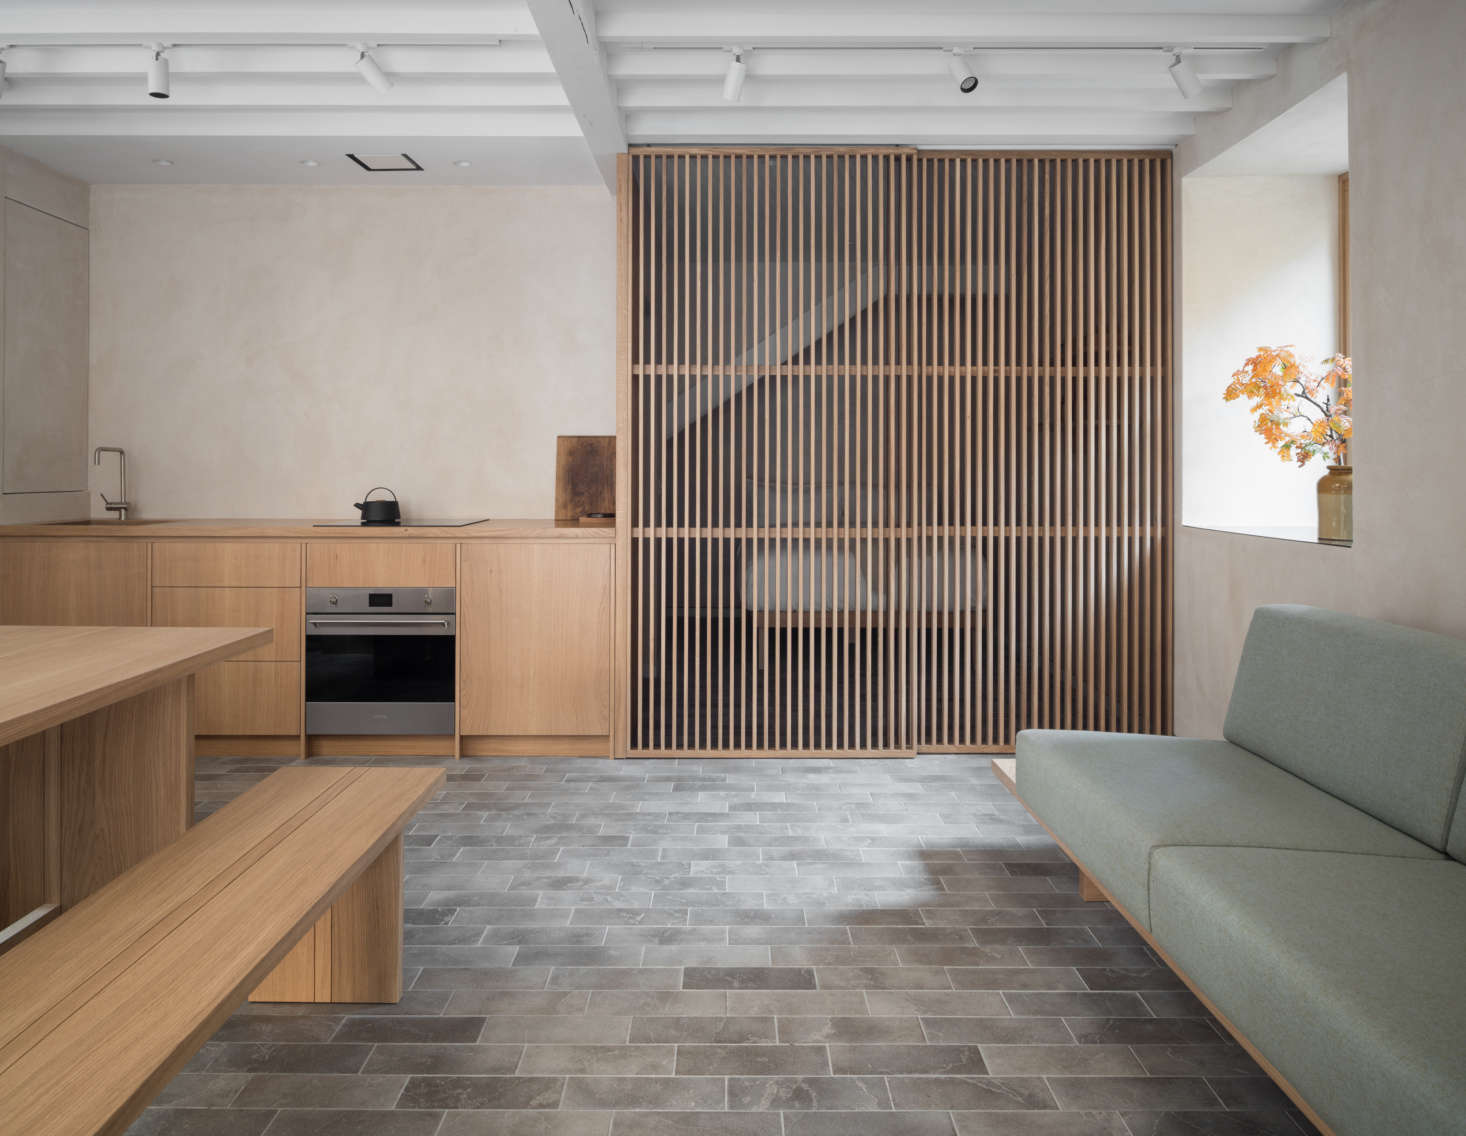 The gray limestone tiles—with radiant floor heating—echo the cobblestones outside. In the back of the room, a second slatted wood screen divides the bedroom from the rest of the quarters.